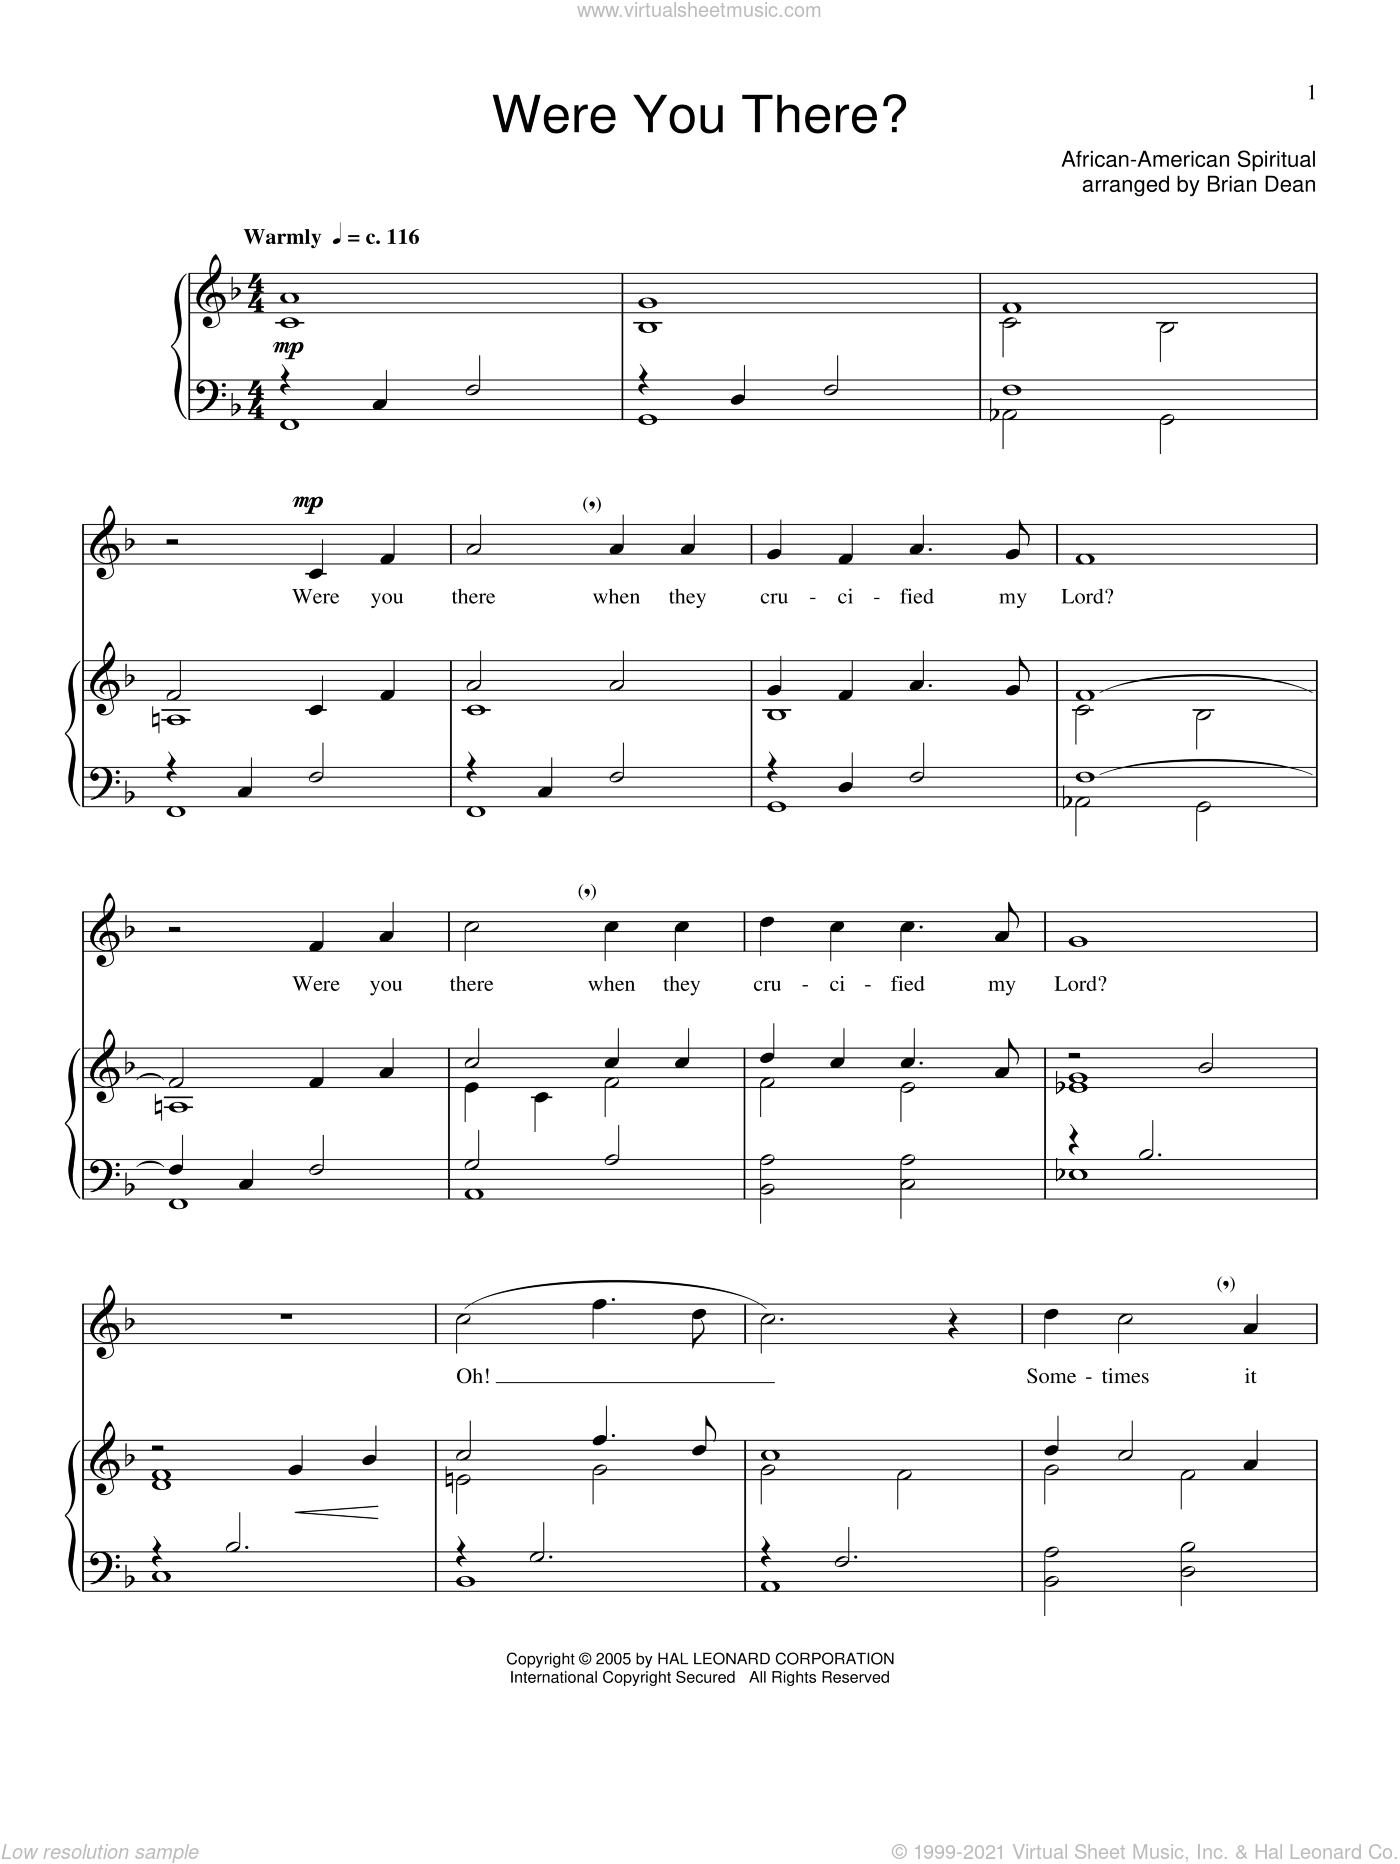 Were You There? sheet music for voice and piano